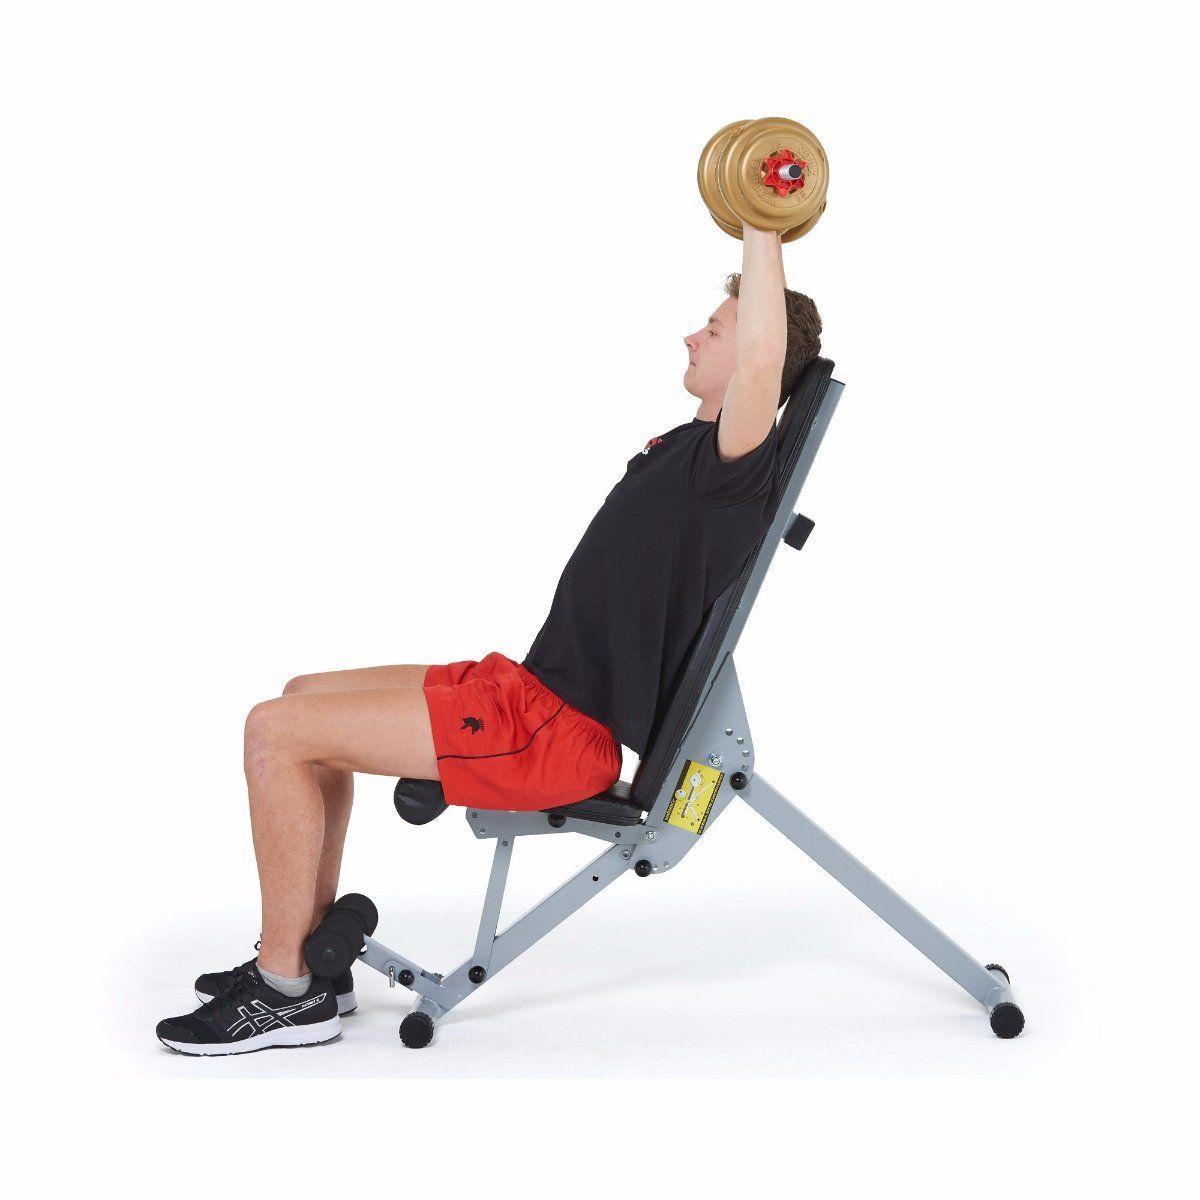 13 Bench Db York 1 Hyper